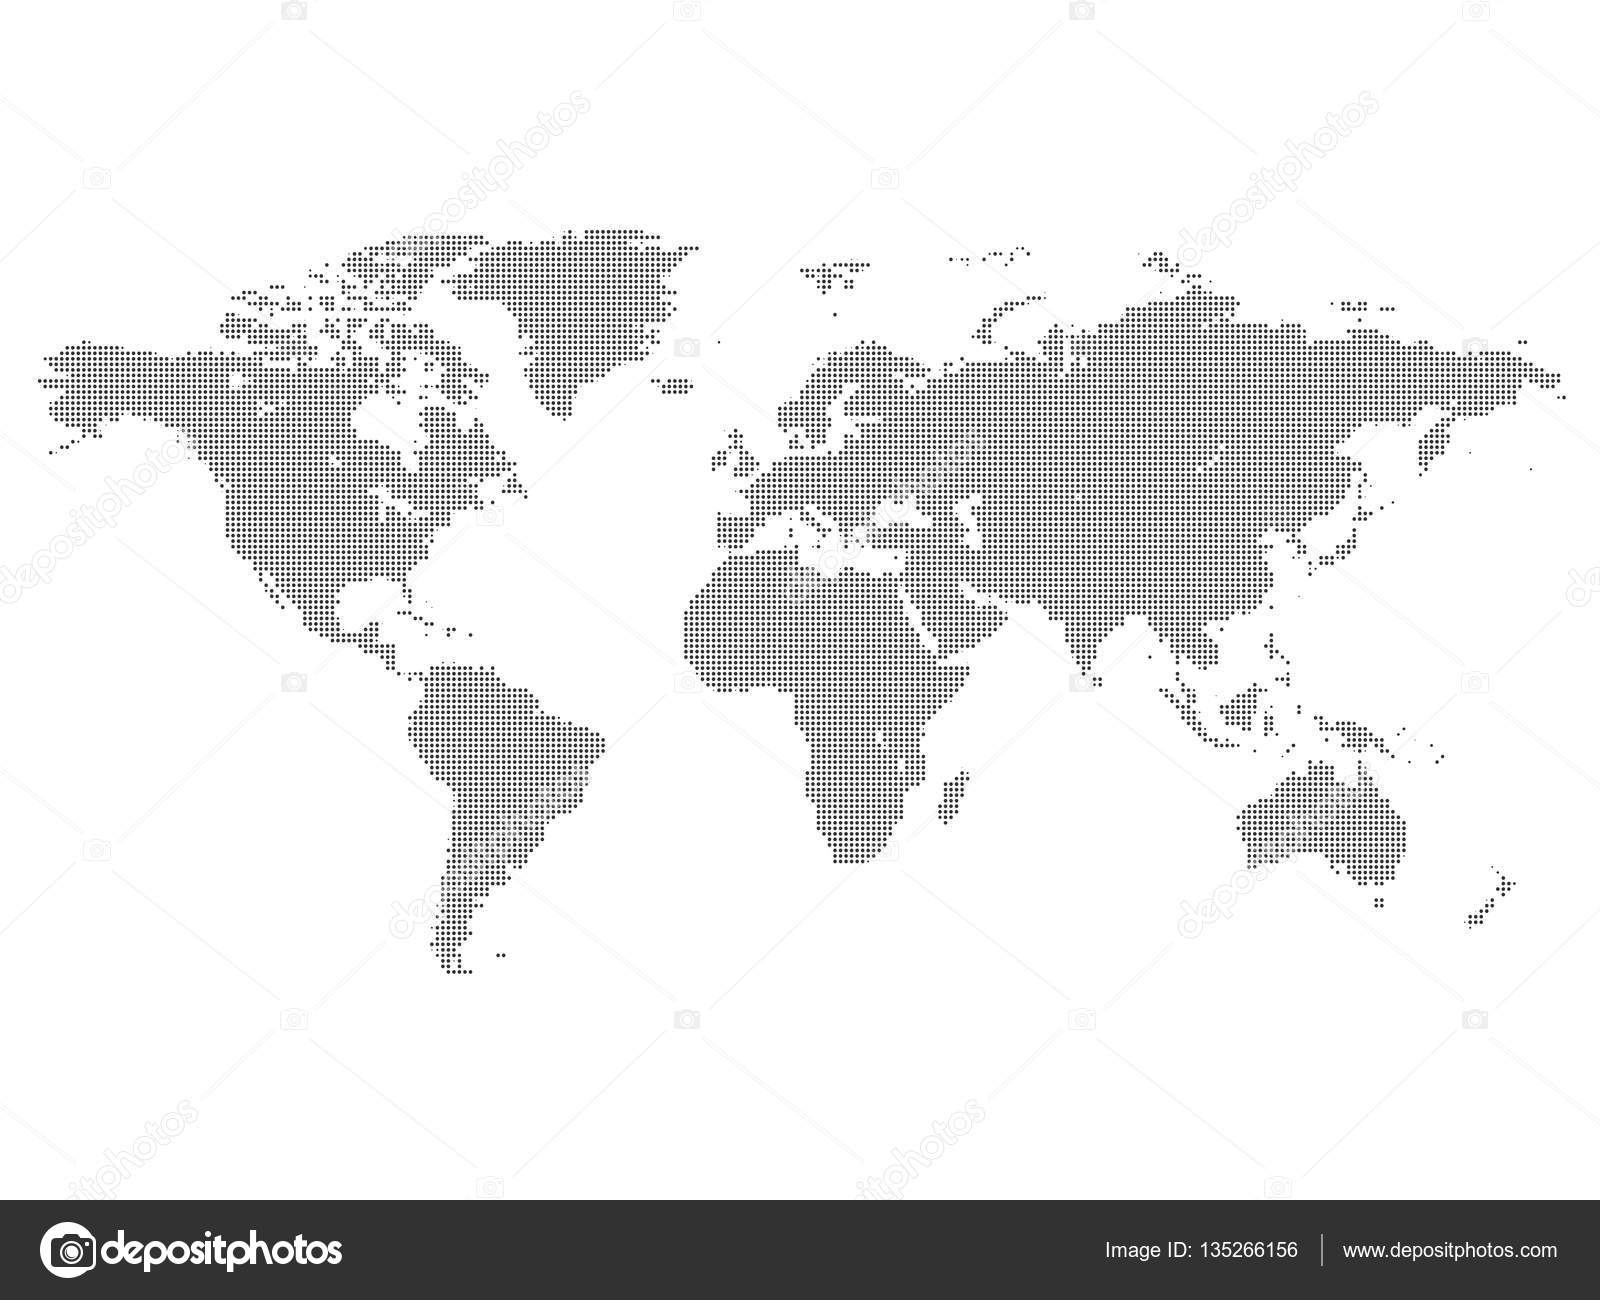 World map made of dots stock vector angelmax 135266156 world map made of dots stock vector gumiabroncs Choice Image